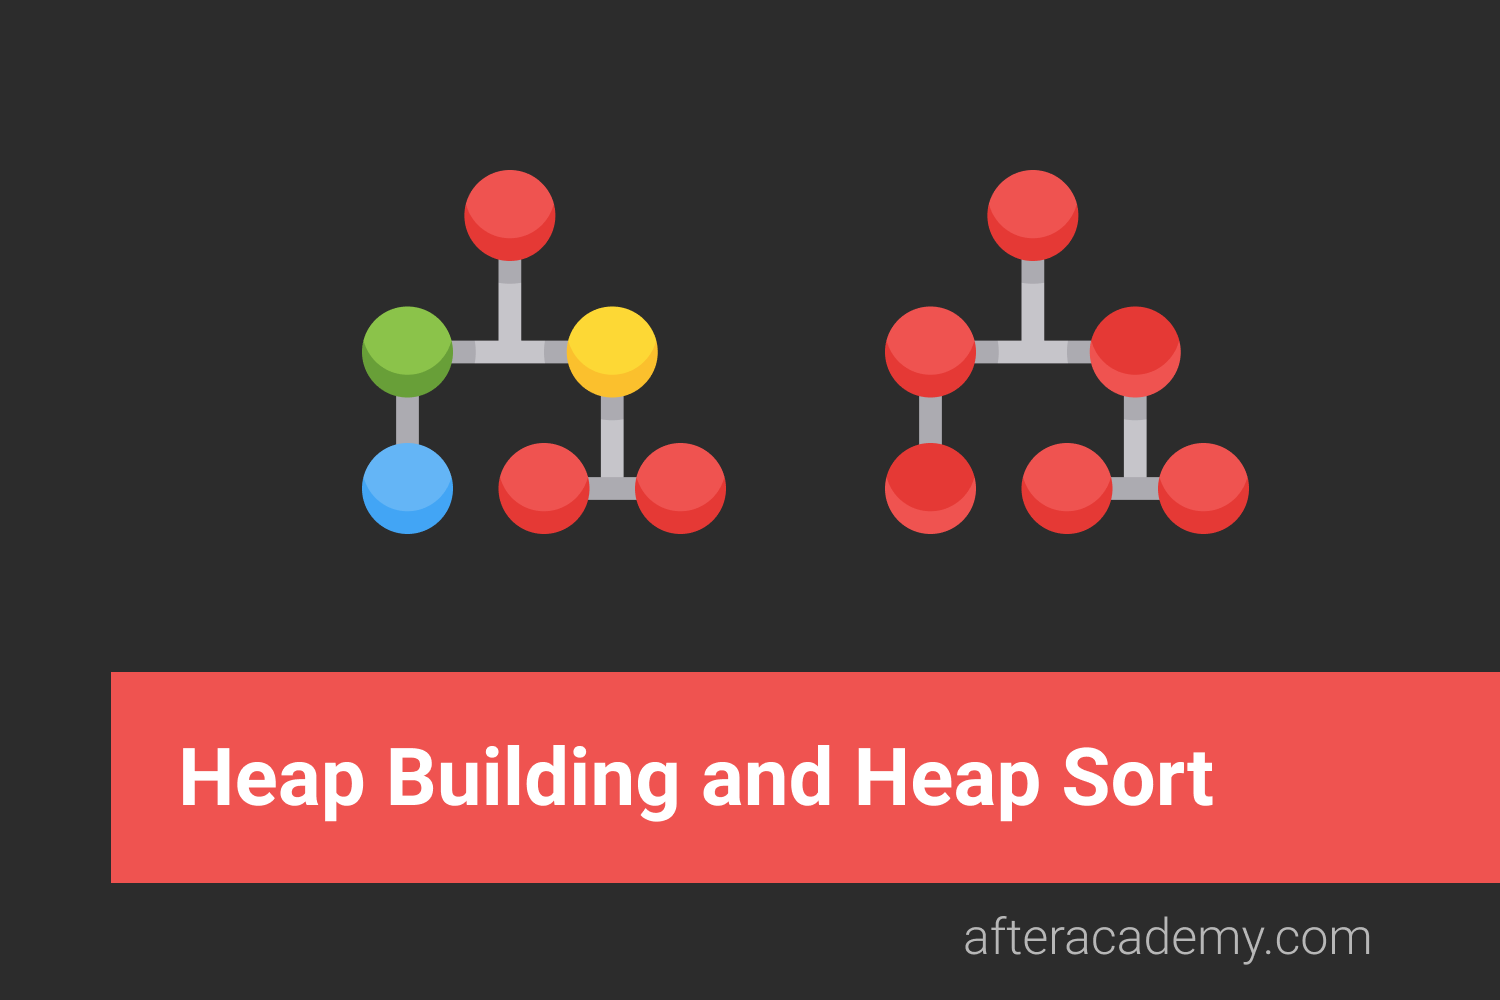 Heap Building and Heap Sort